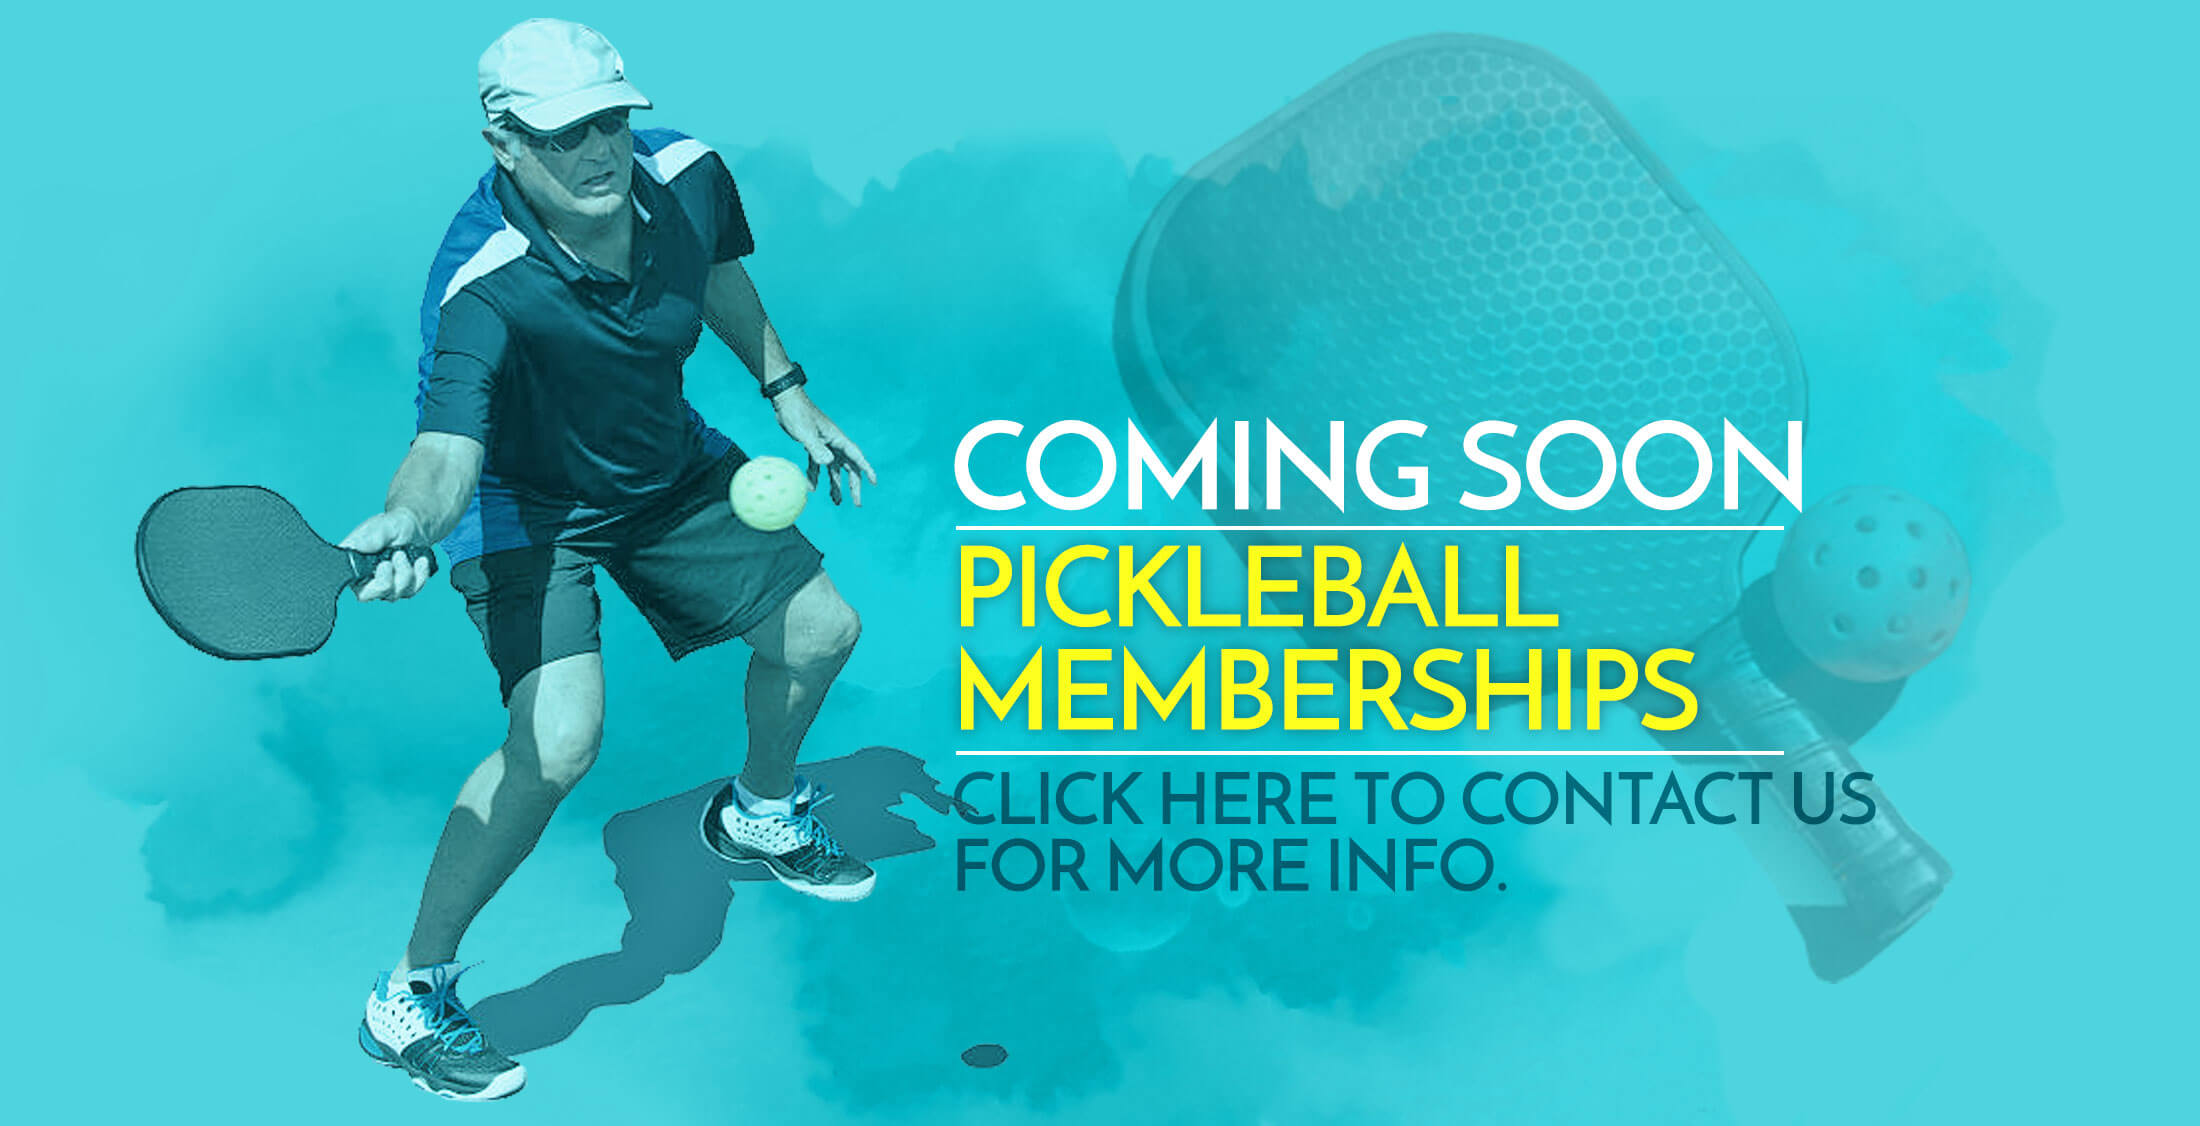 pickleball-coming-soon